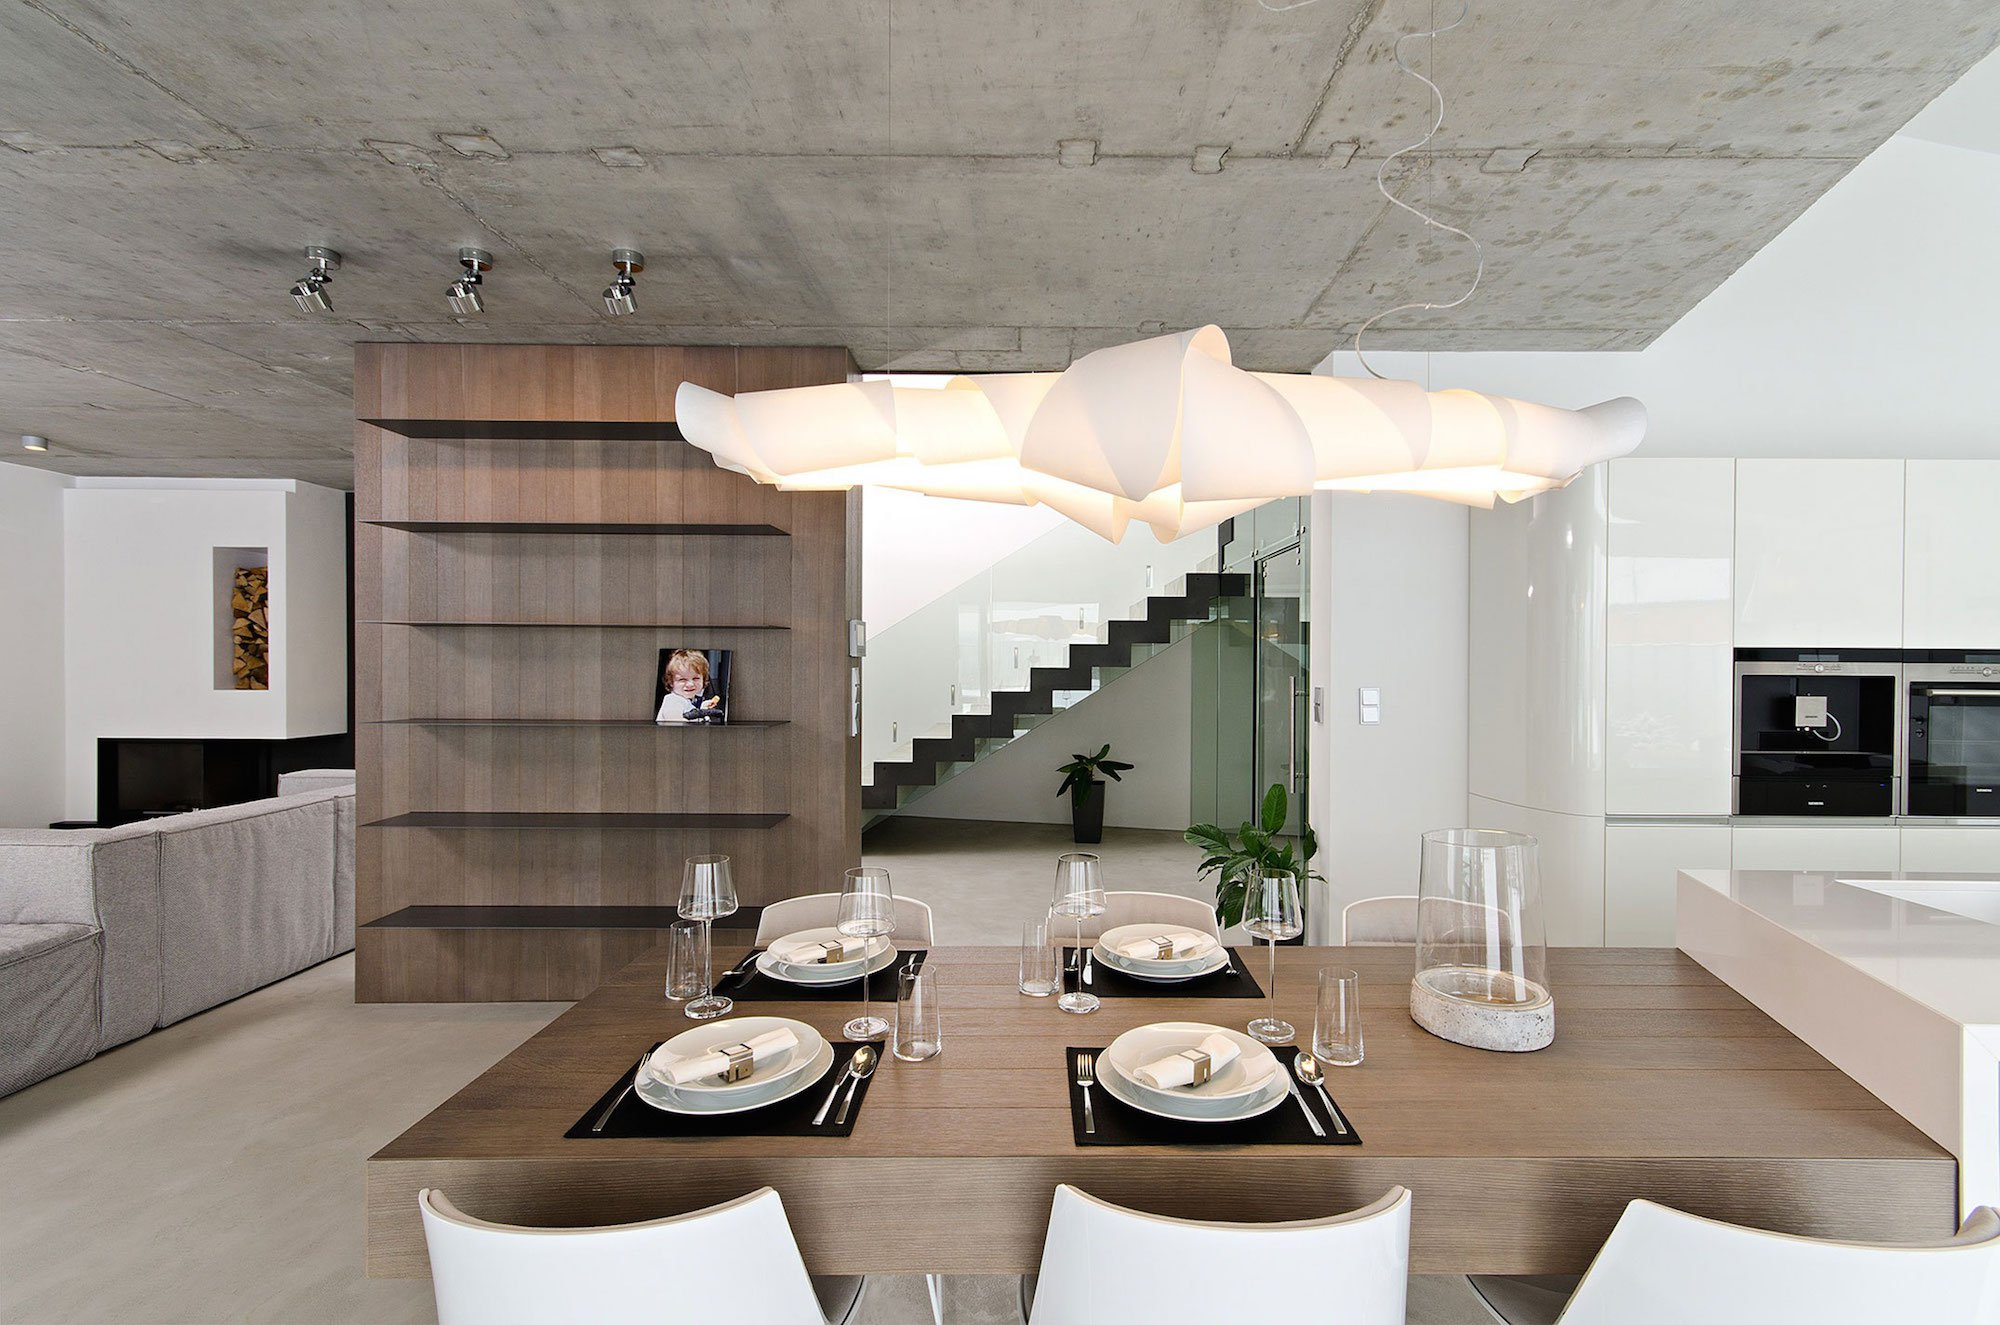 Concrete interior by oooox